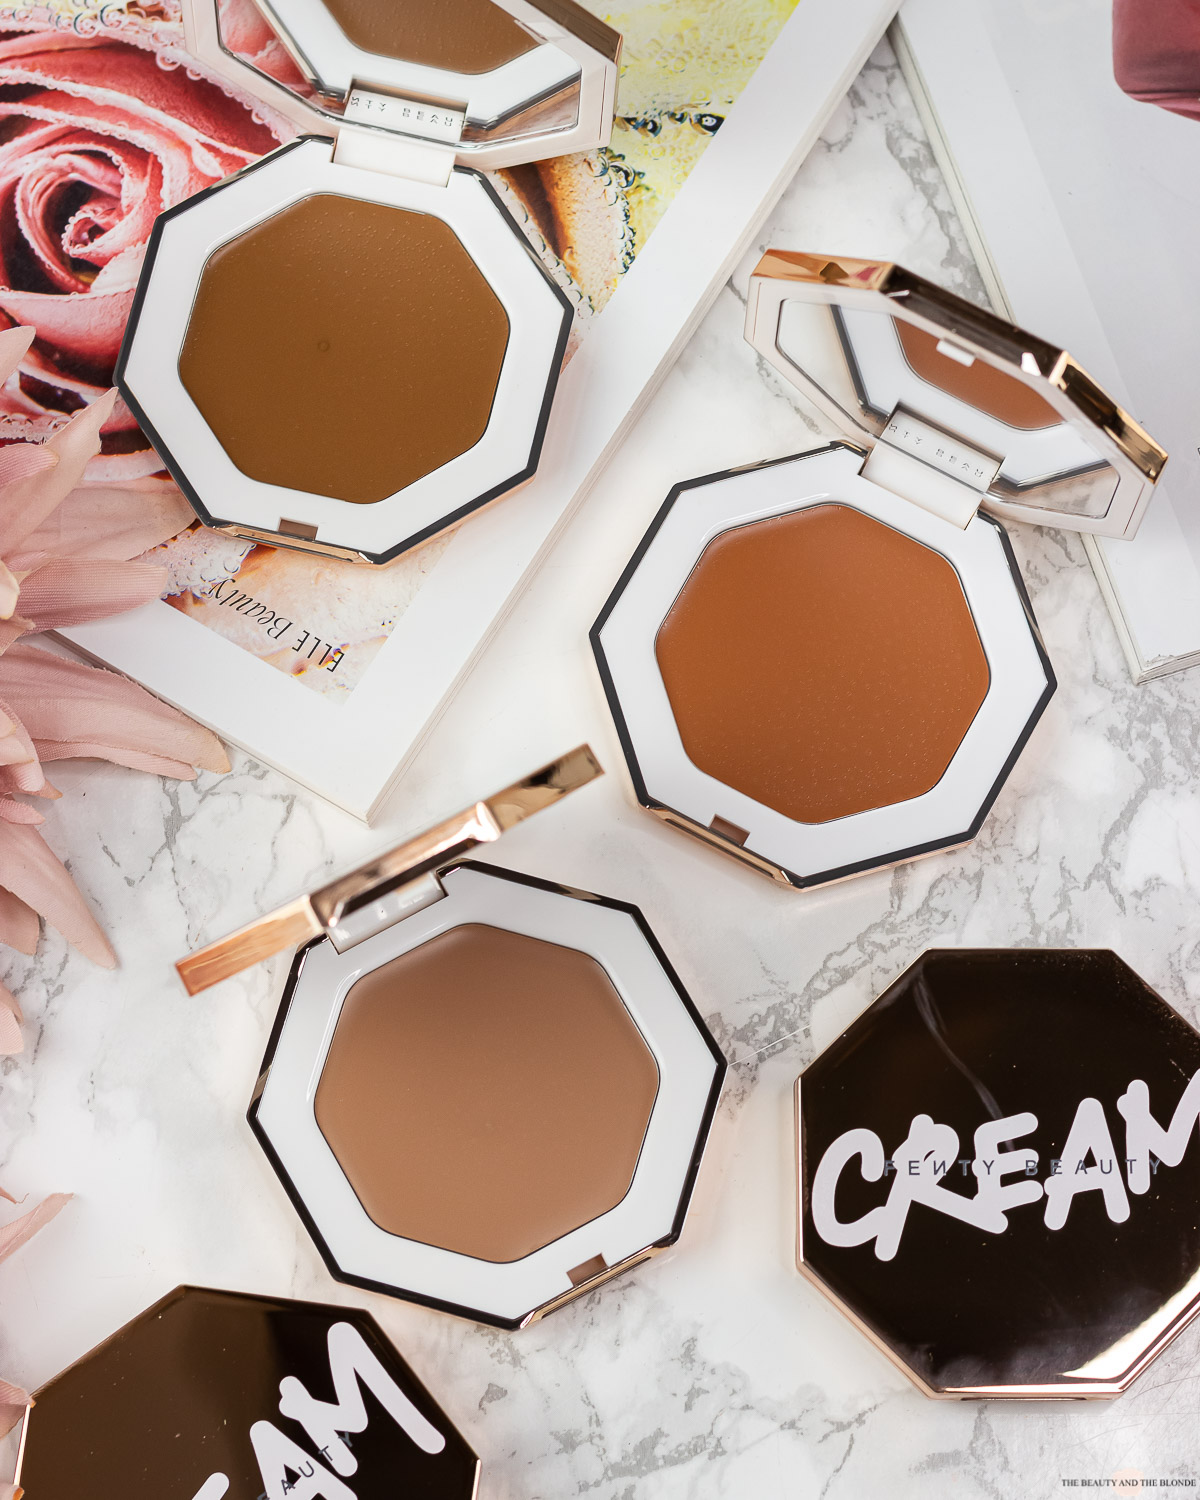 Fenty Beauty Cheeks Out Cream Bronzer Review